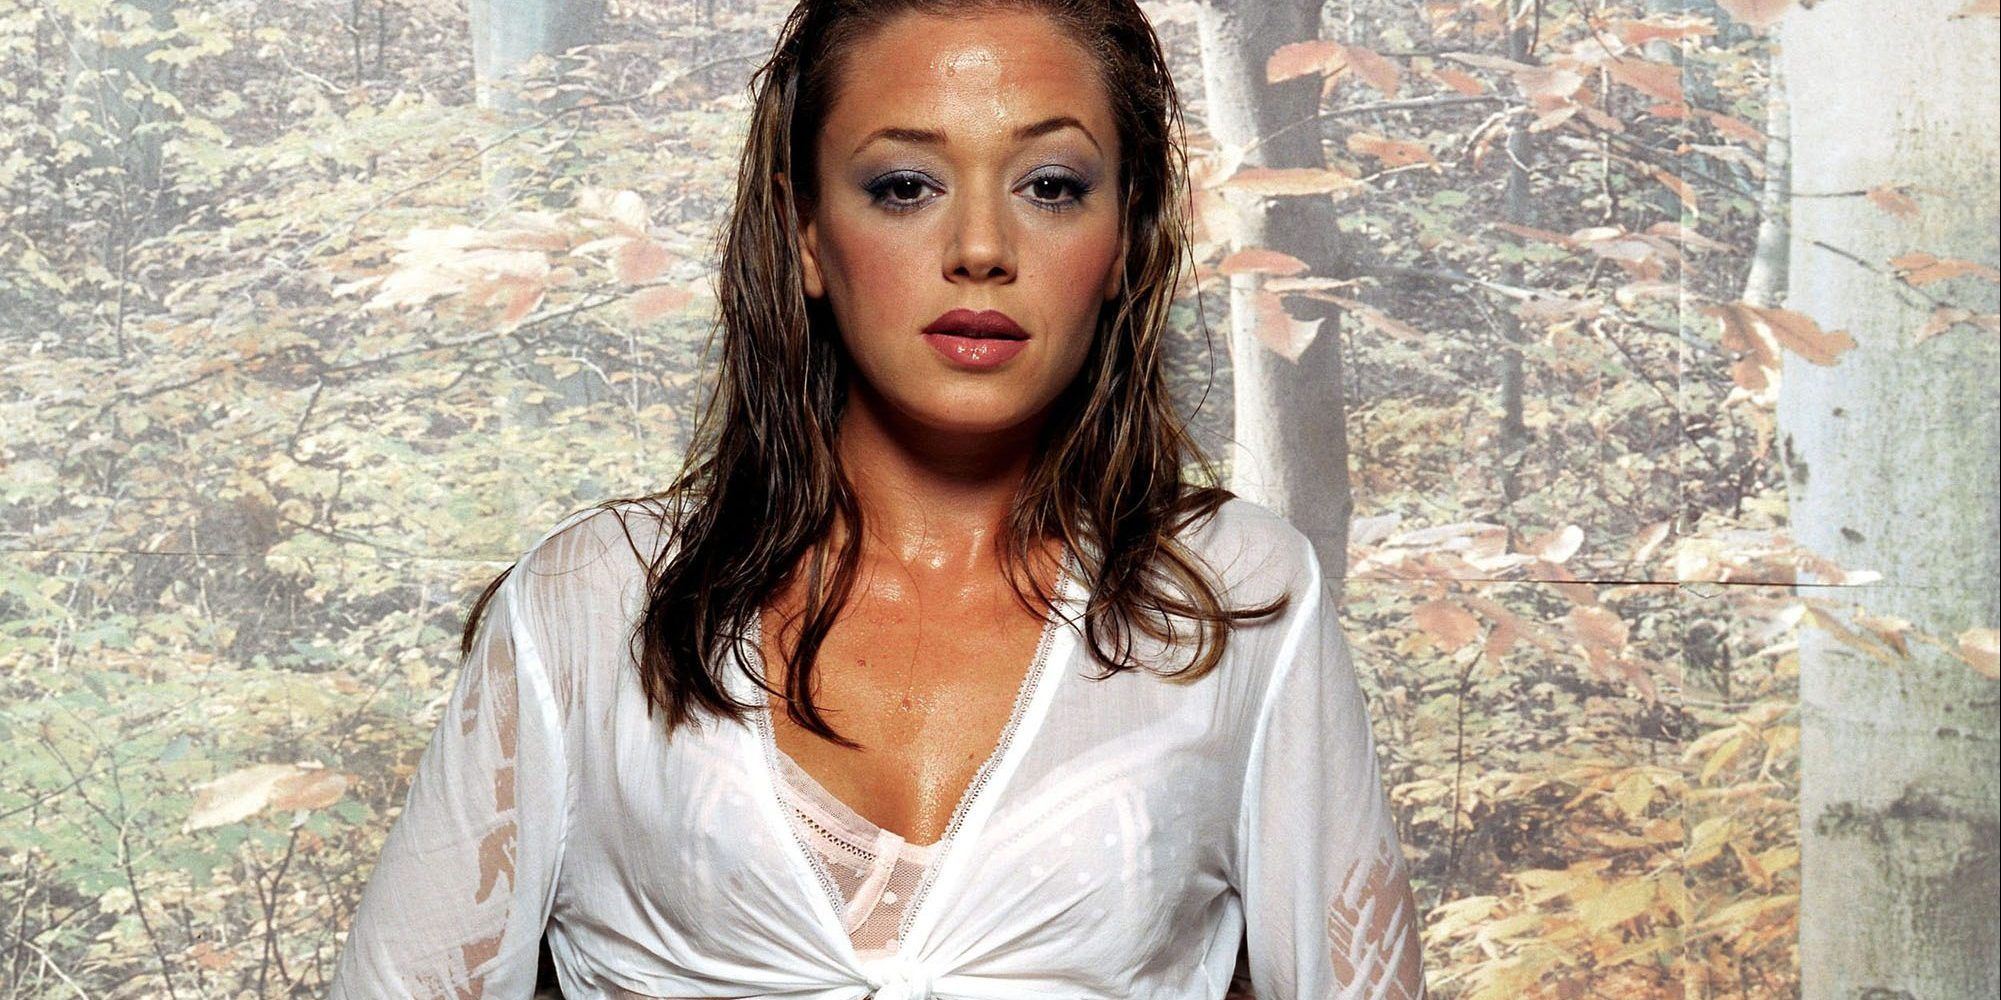 Leah remini hot scene